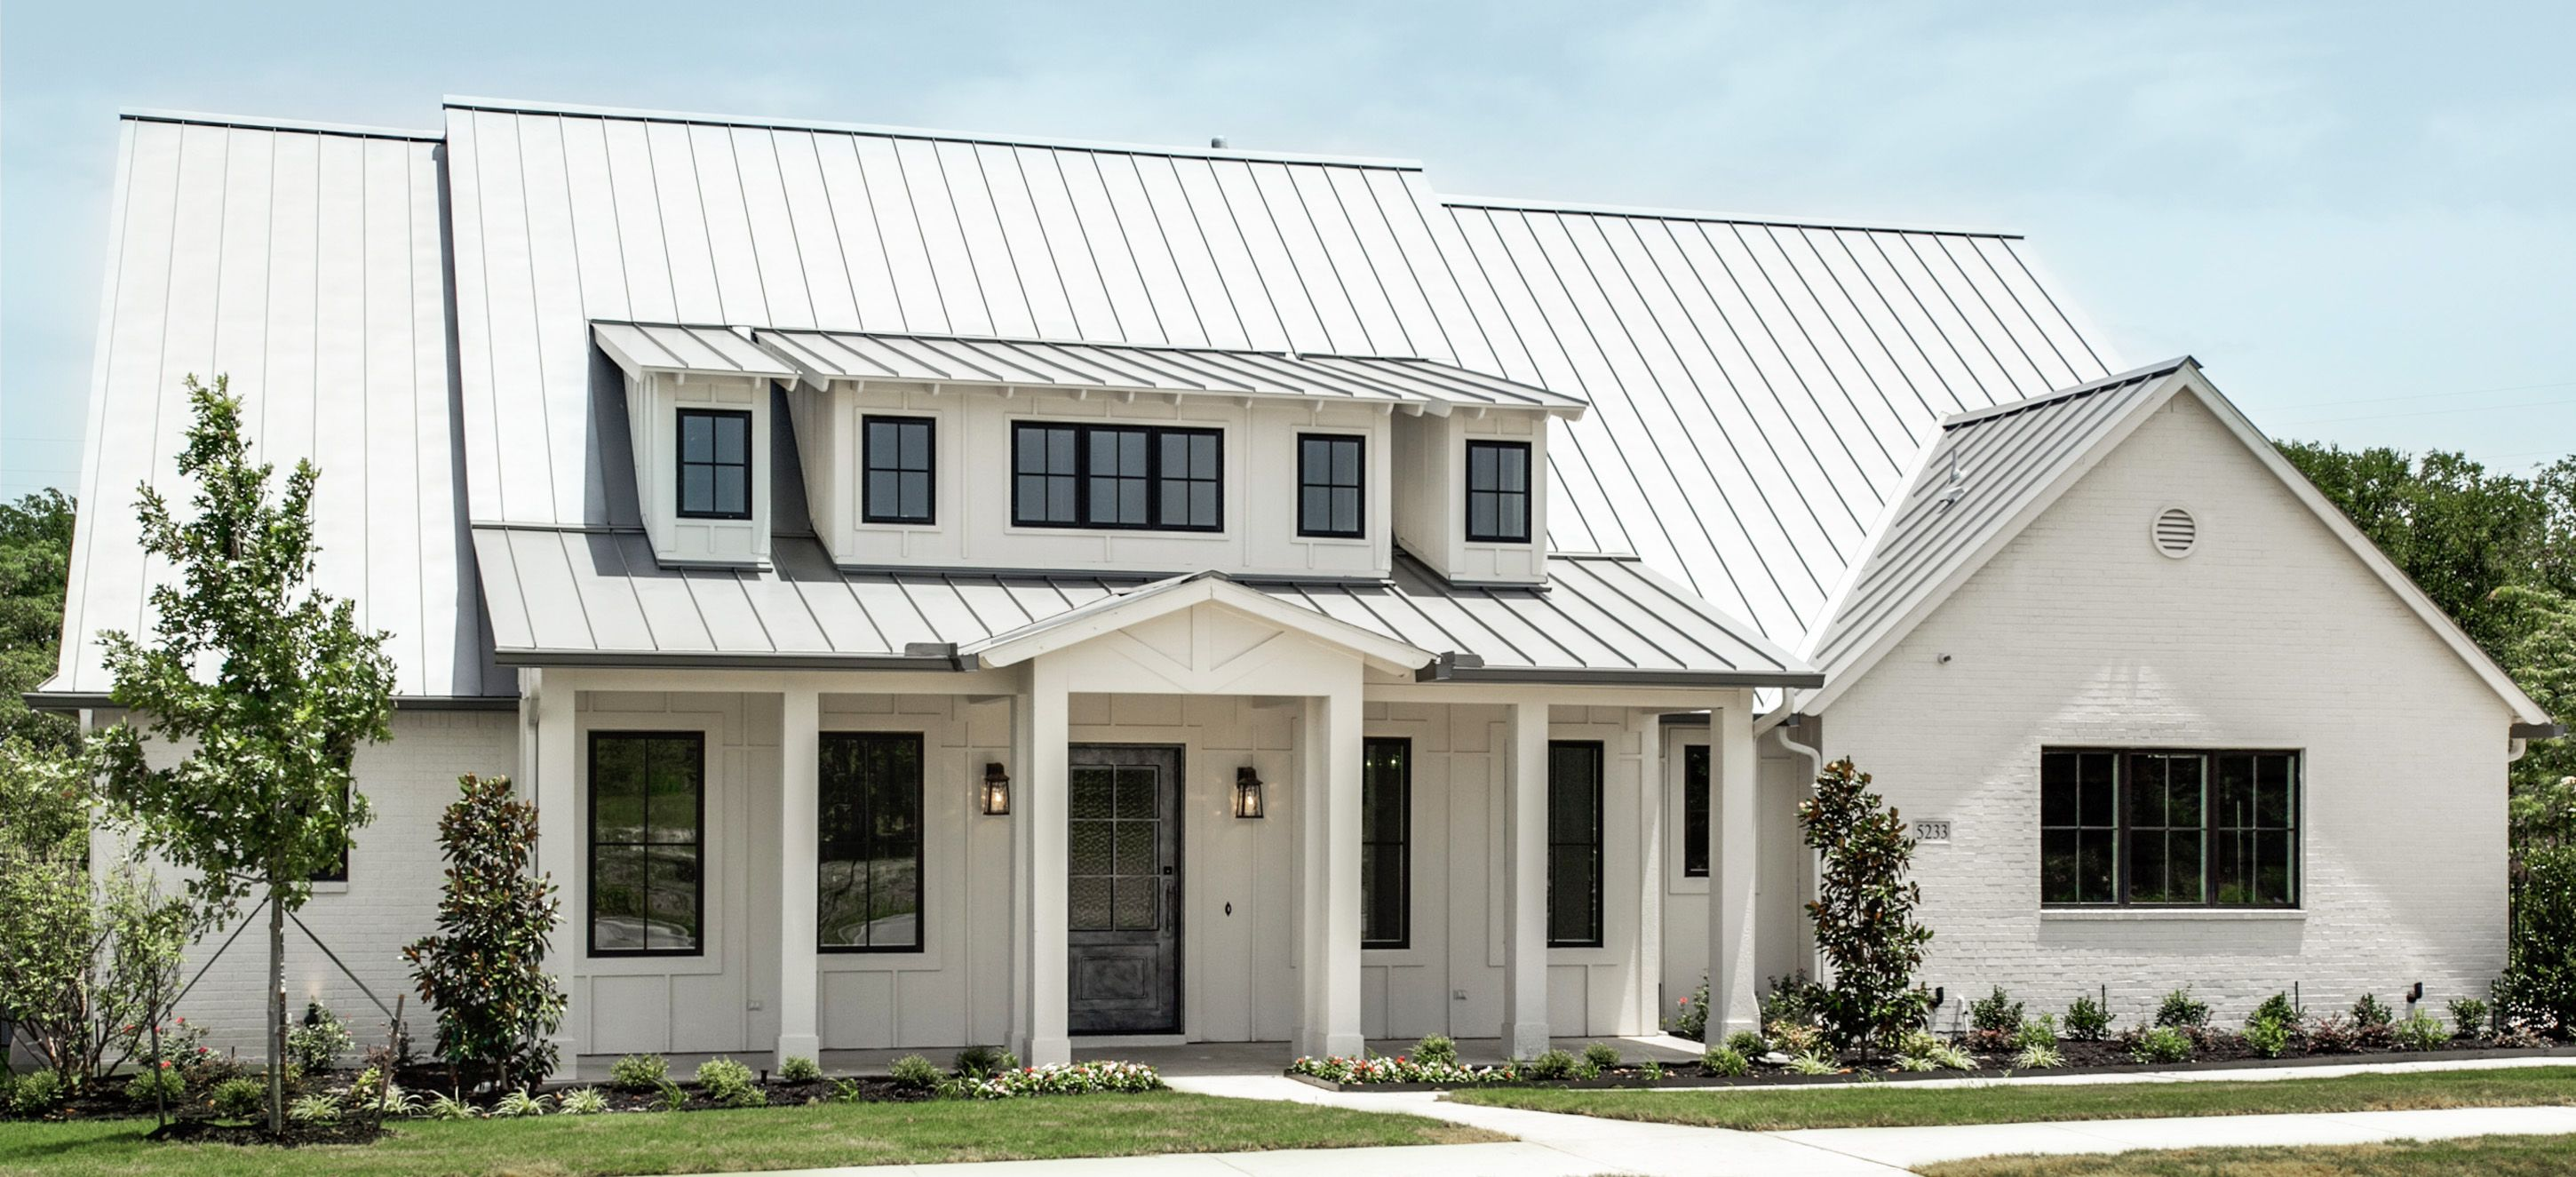 Modern farm house la cantera metal roof white painted for Farmhouse metal roof